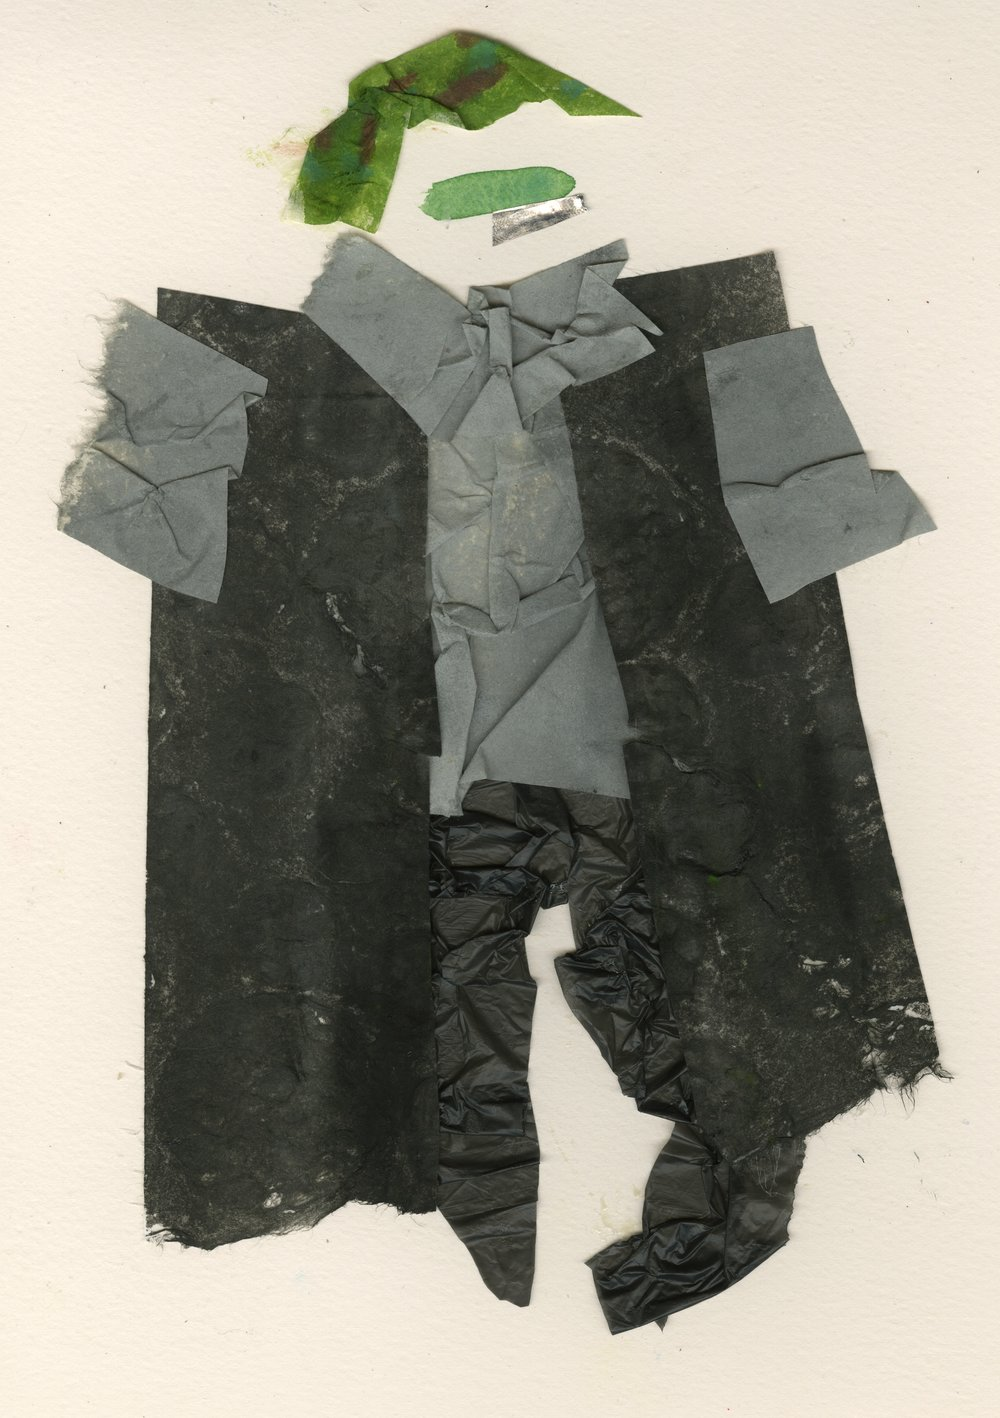 Druid Boy Leaves the Forest   Gouache and Collage  2016